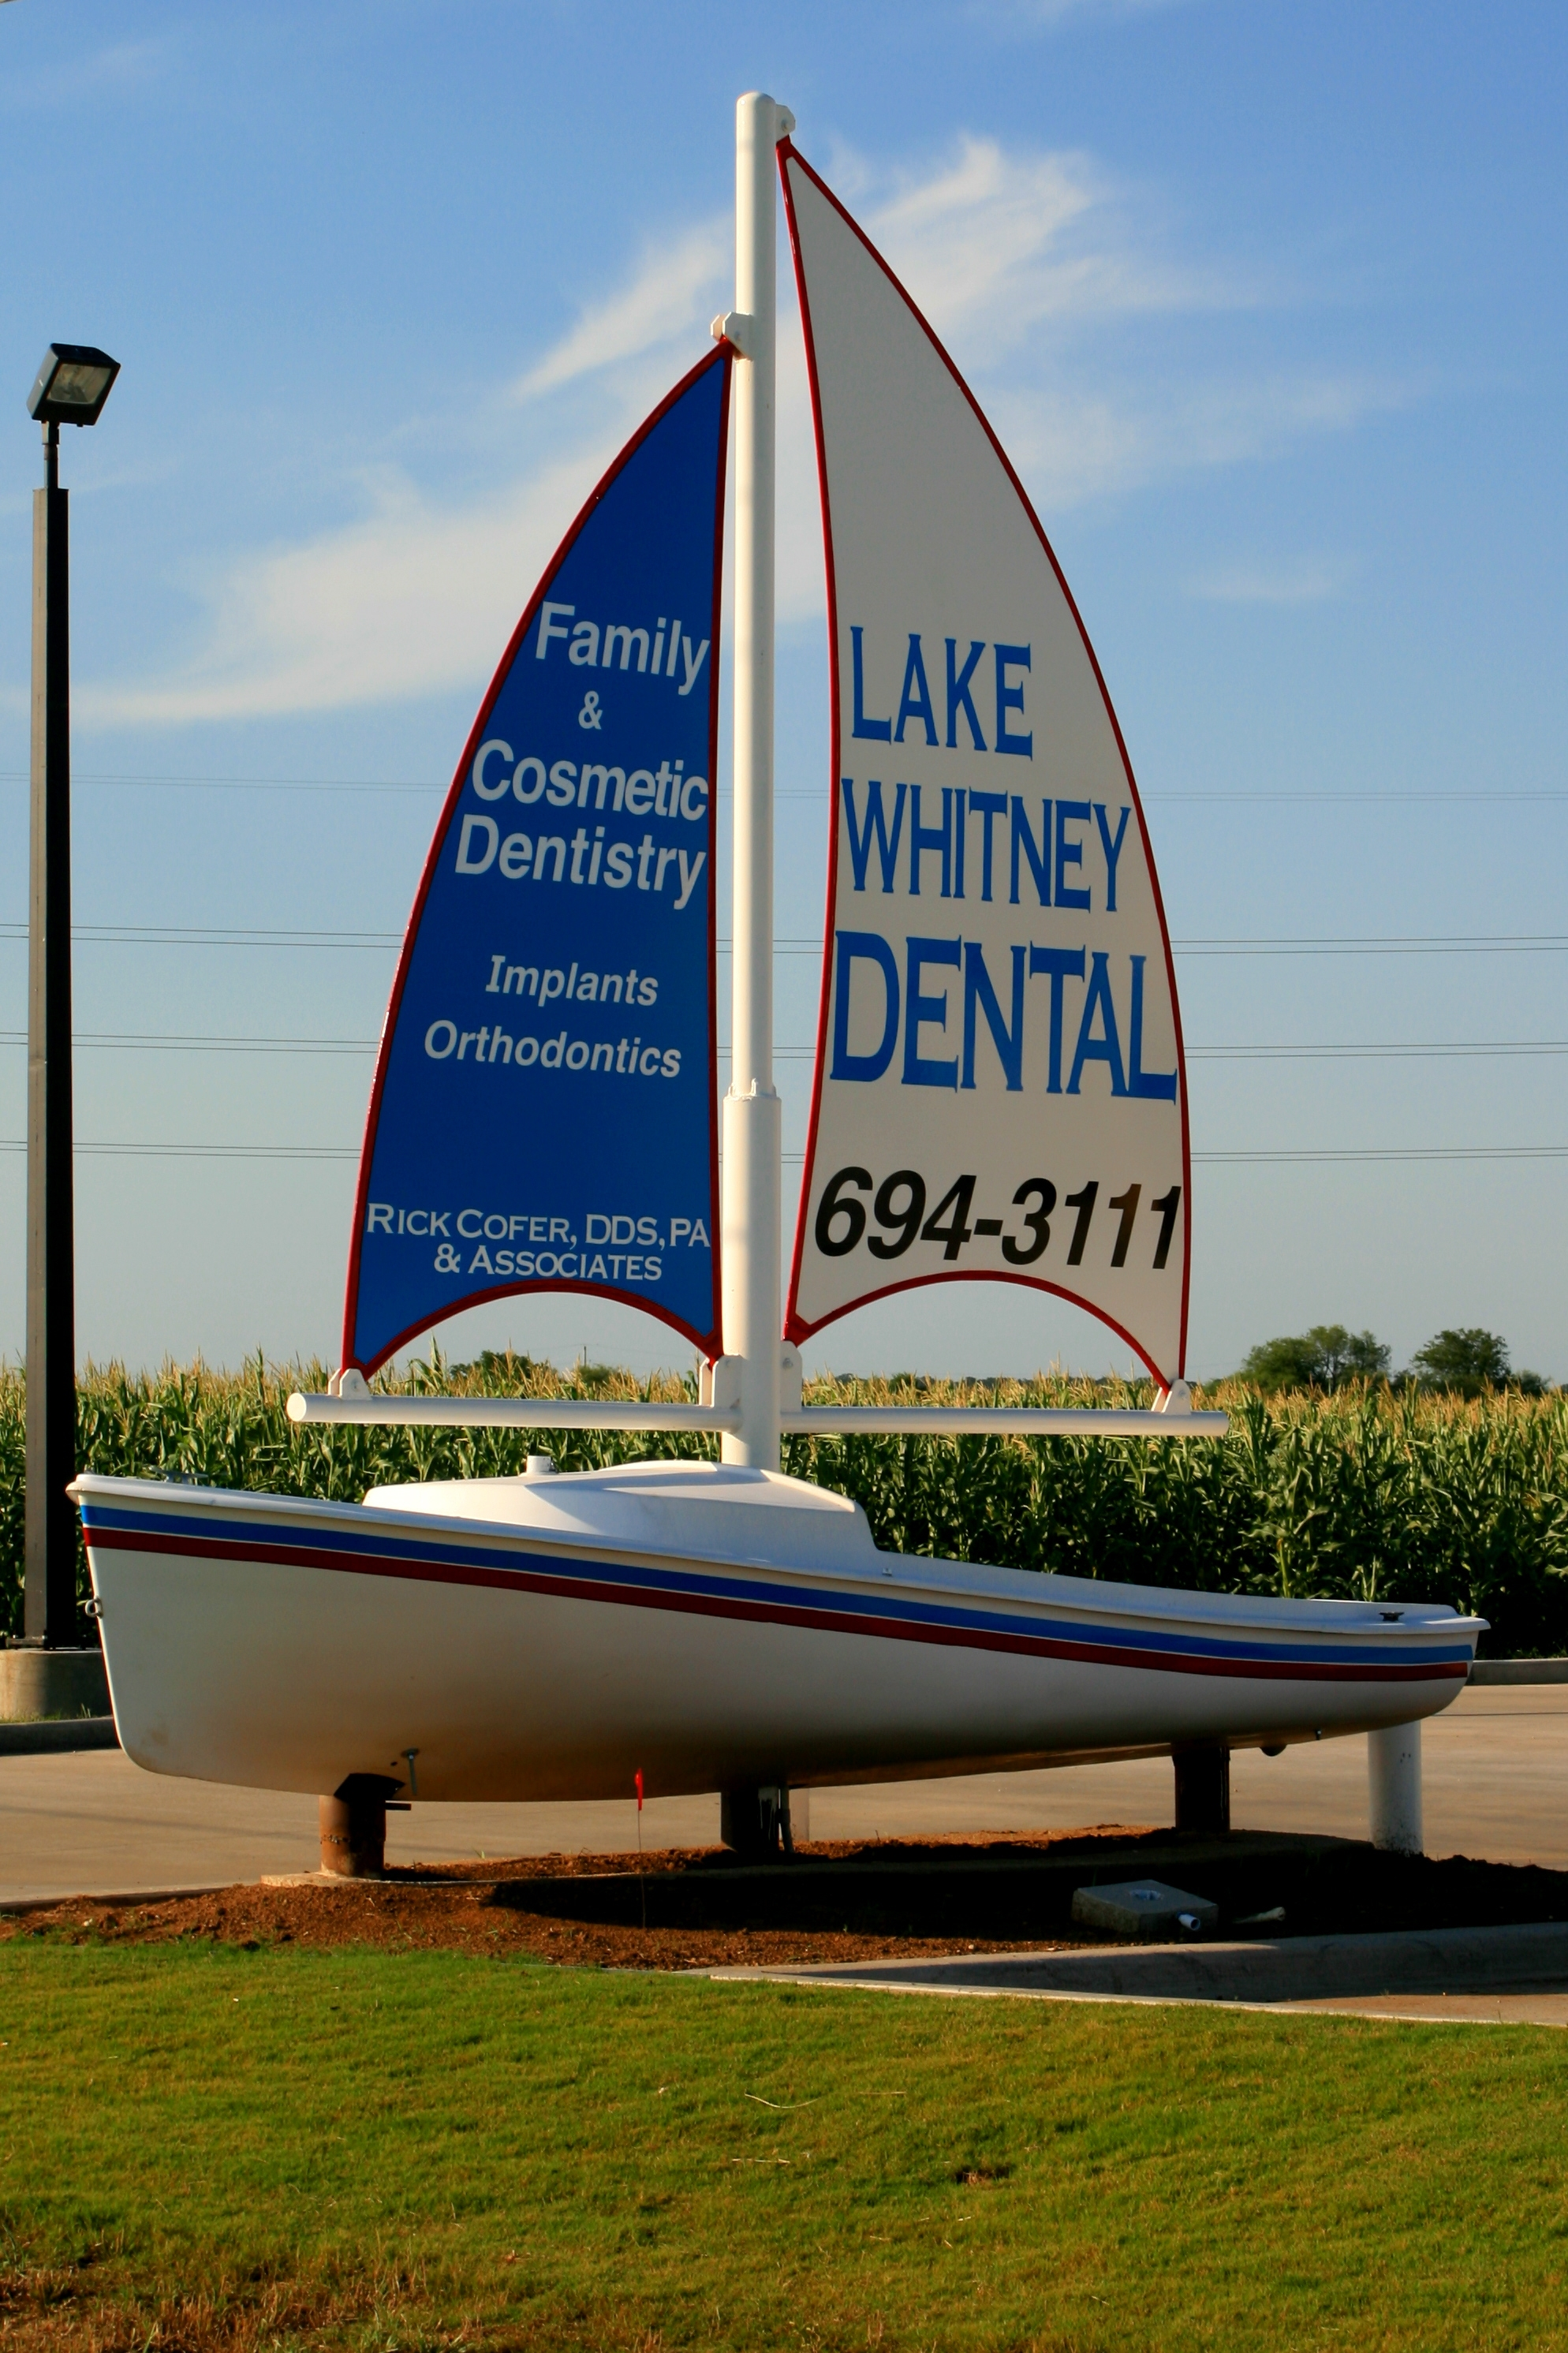 Sailboat LW Dental